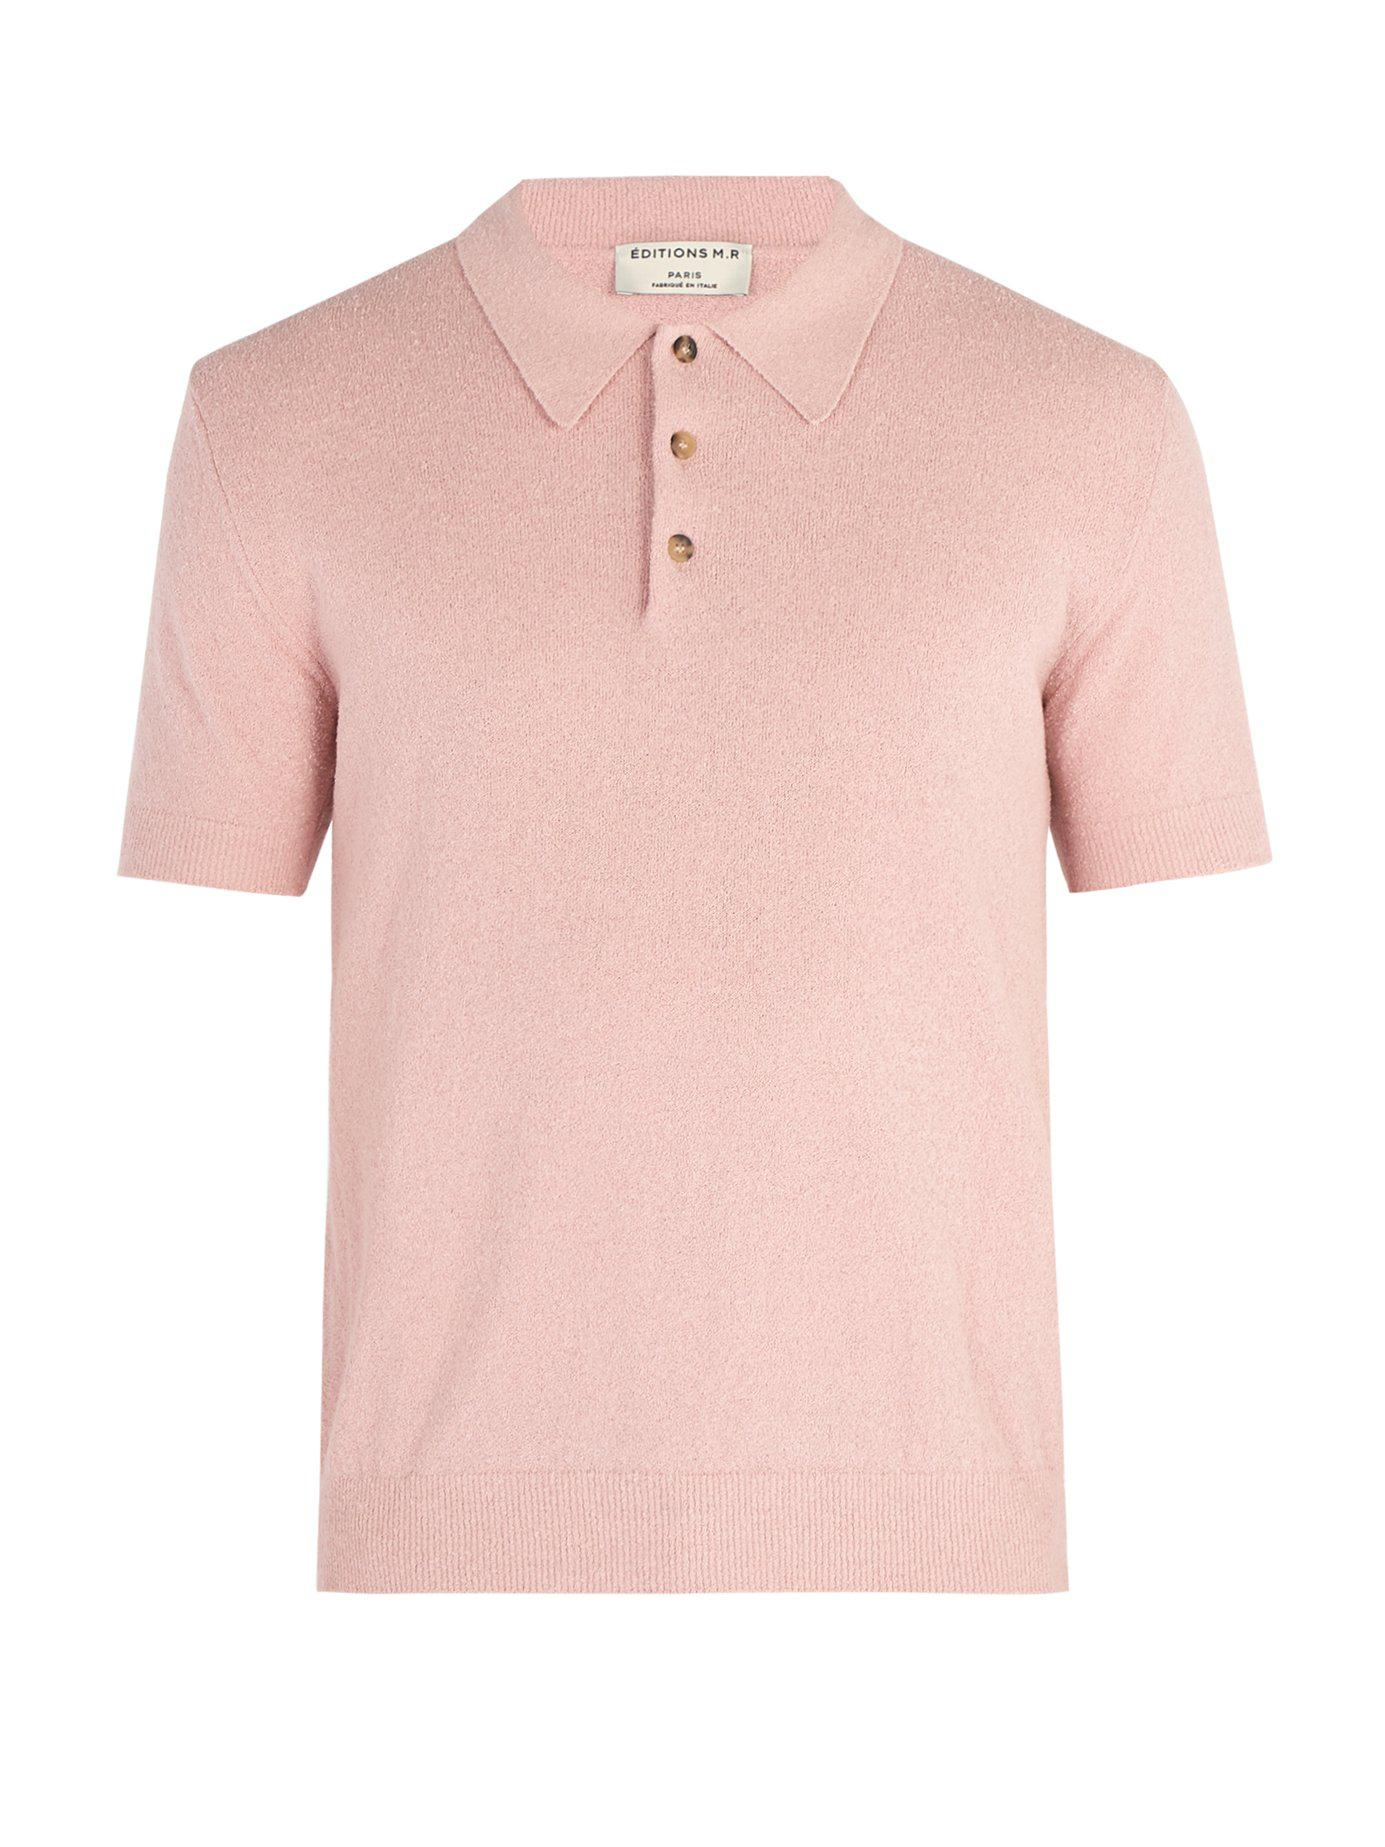 d6a937ad85af Lyst - Éditions MR Jude Terry Towelling Polo Top in Pink for Men